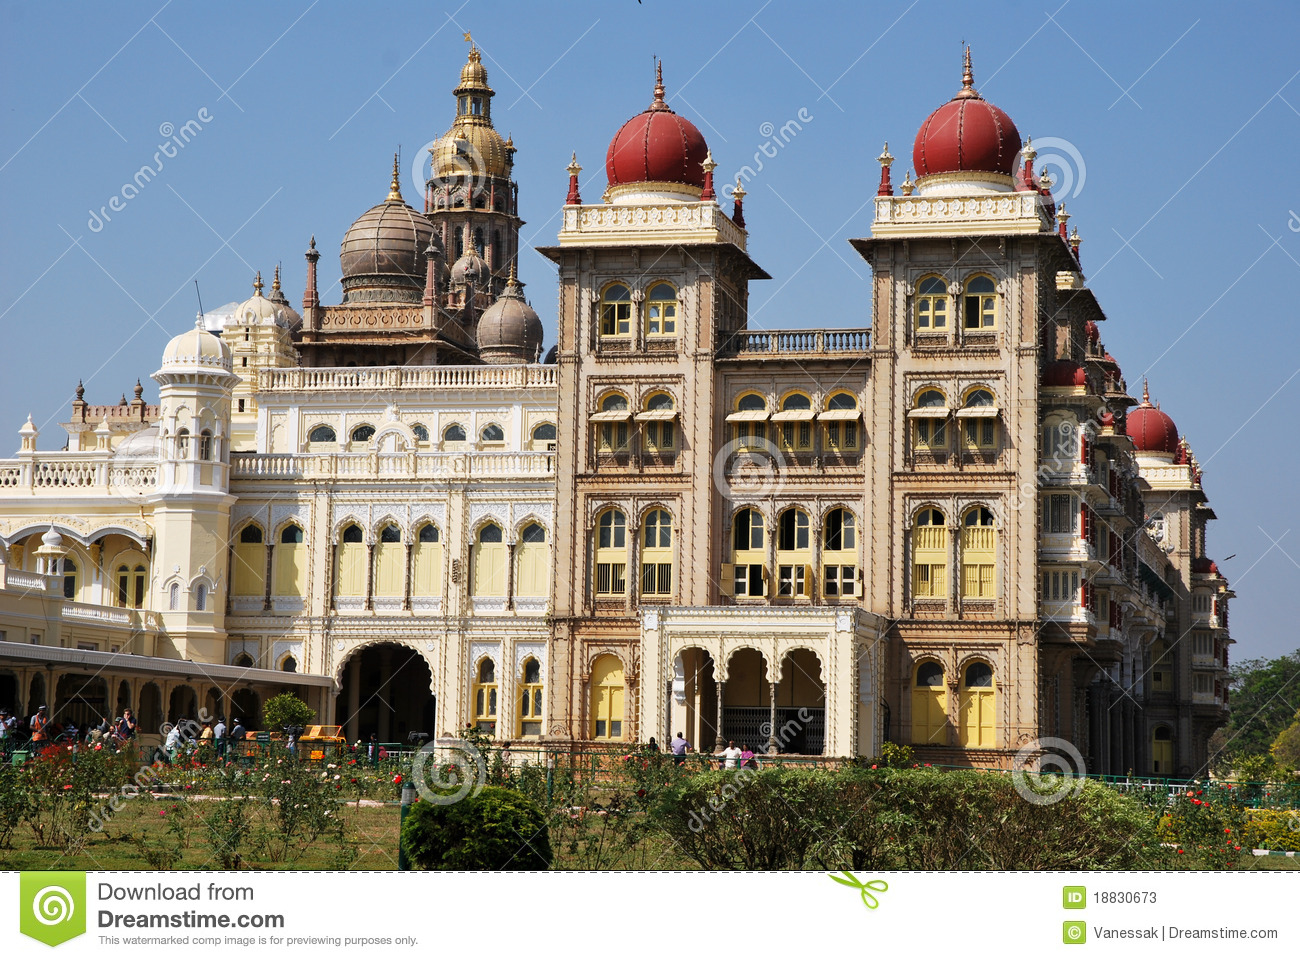 The Mysore palace in India